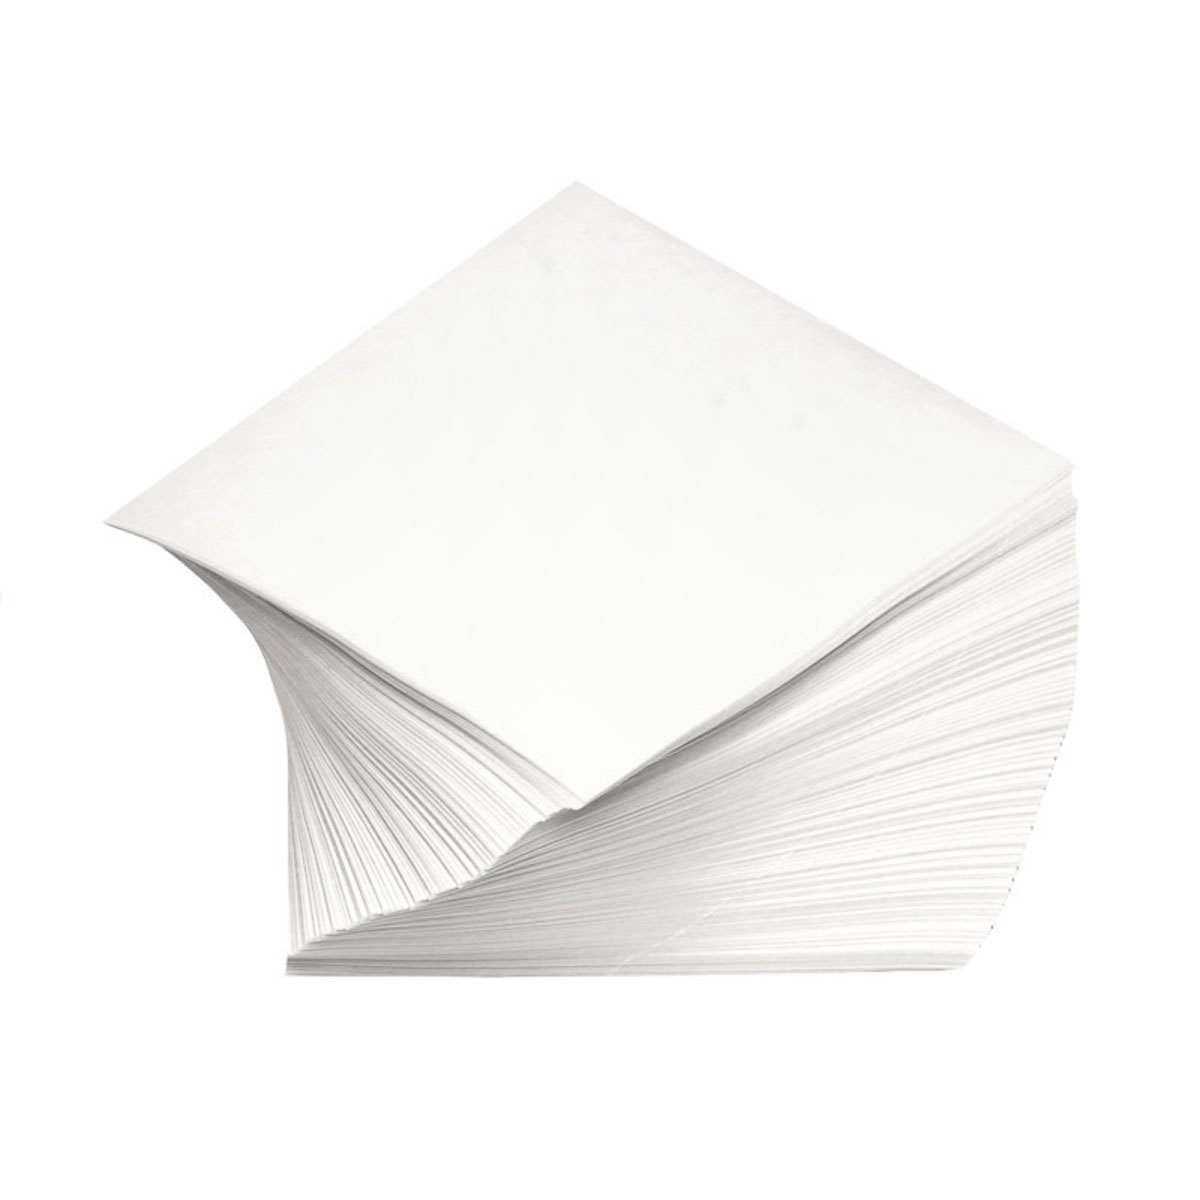 4″ X 4″ Silicone Treated Parchment Paper Squares (2000 Qty.)